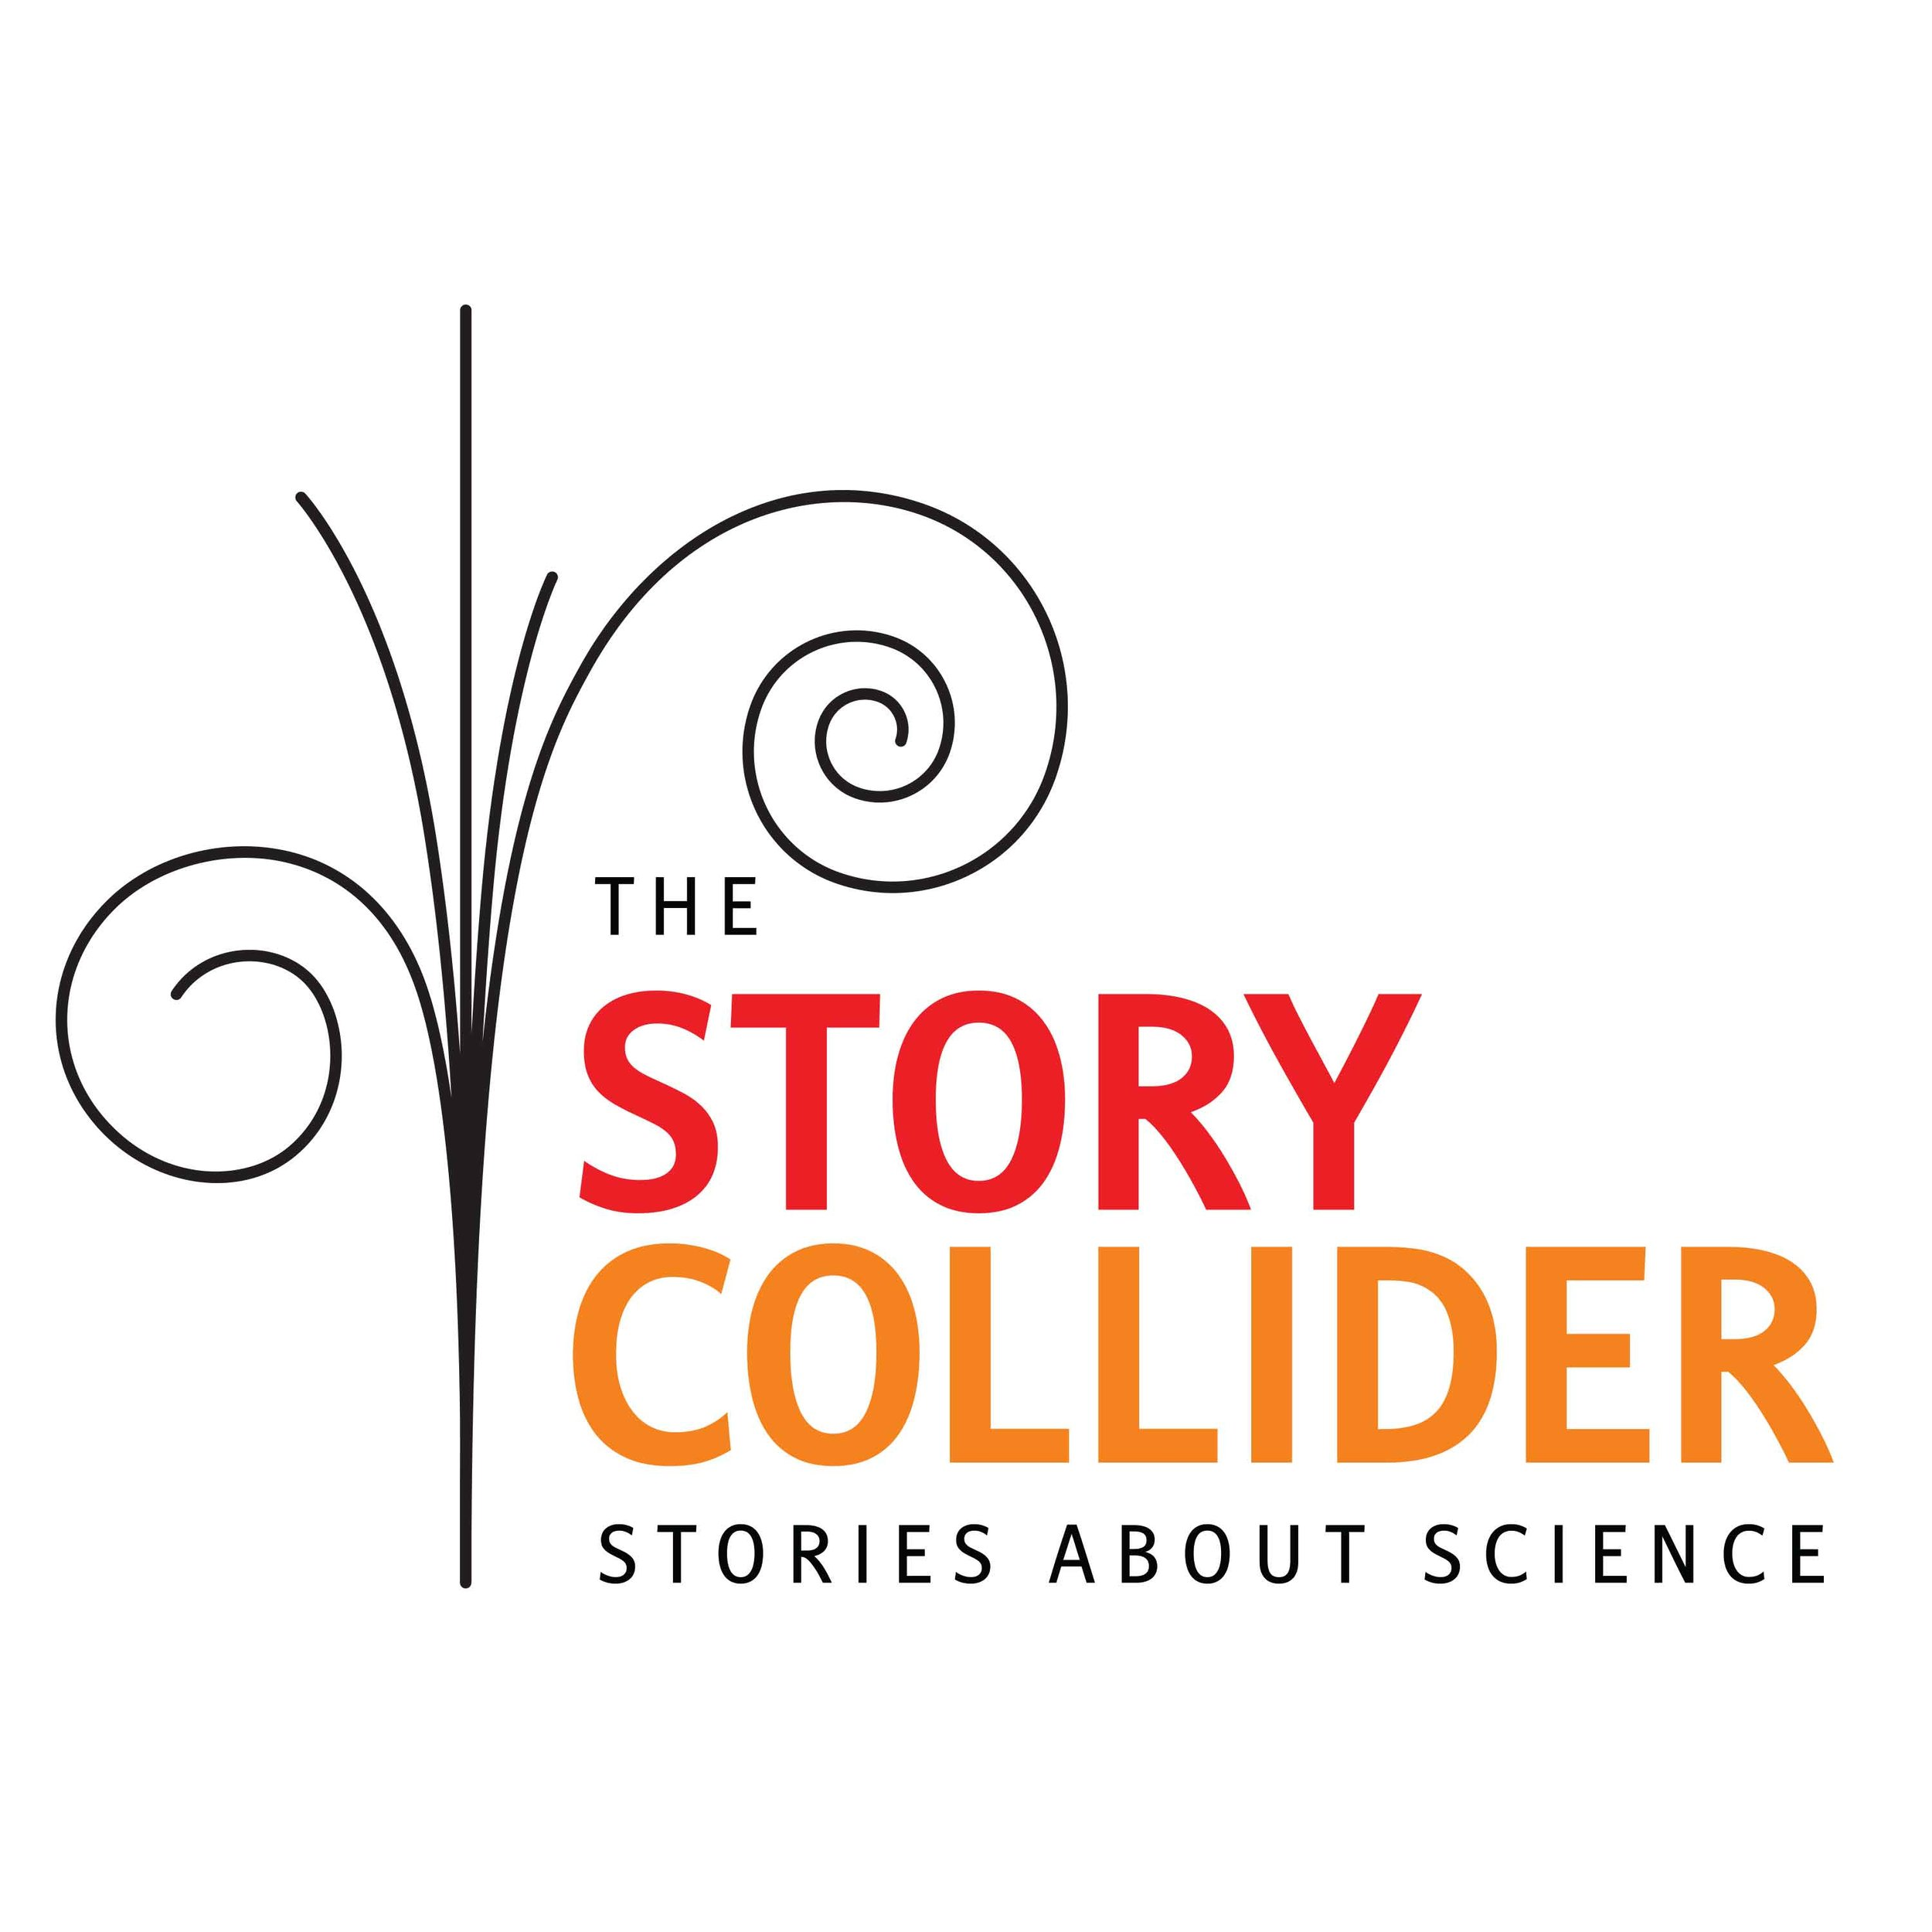 Story-Collider-main-logo-Sq3000px72dpiOptimized.jpg